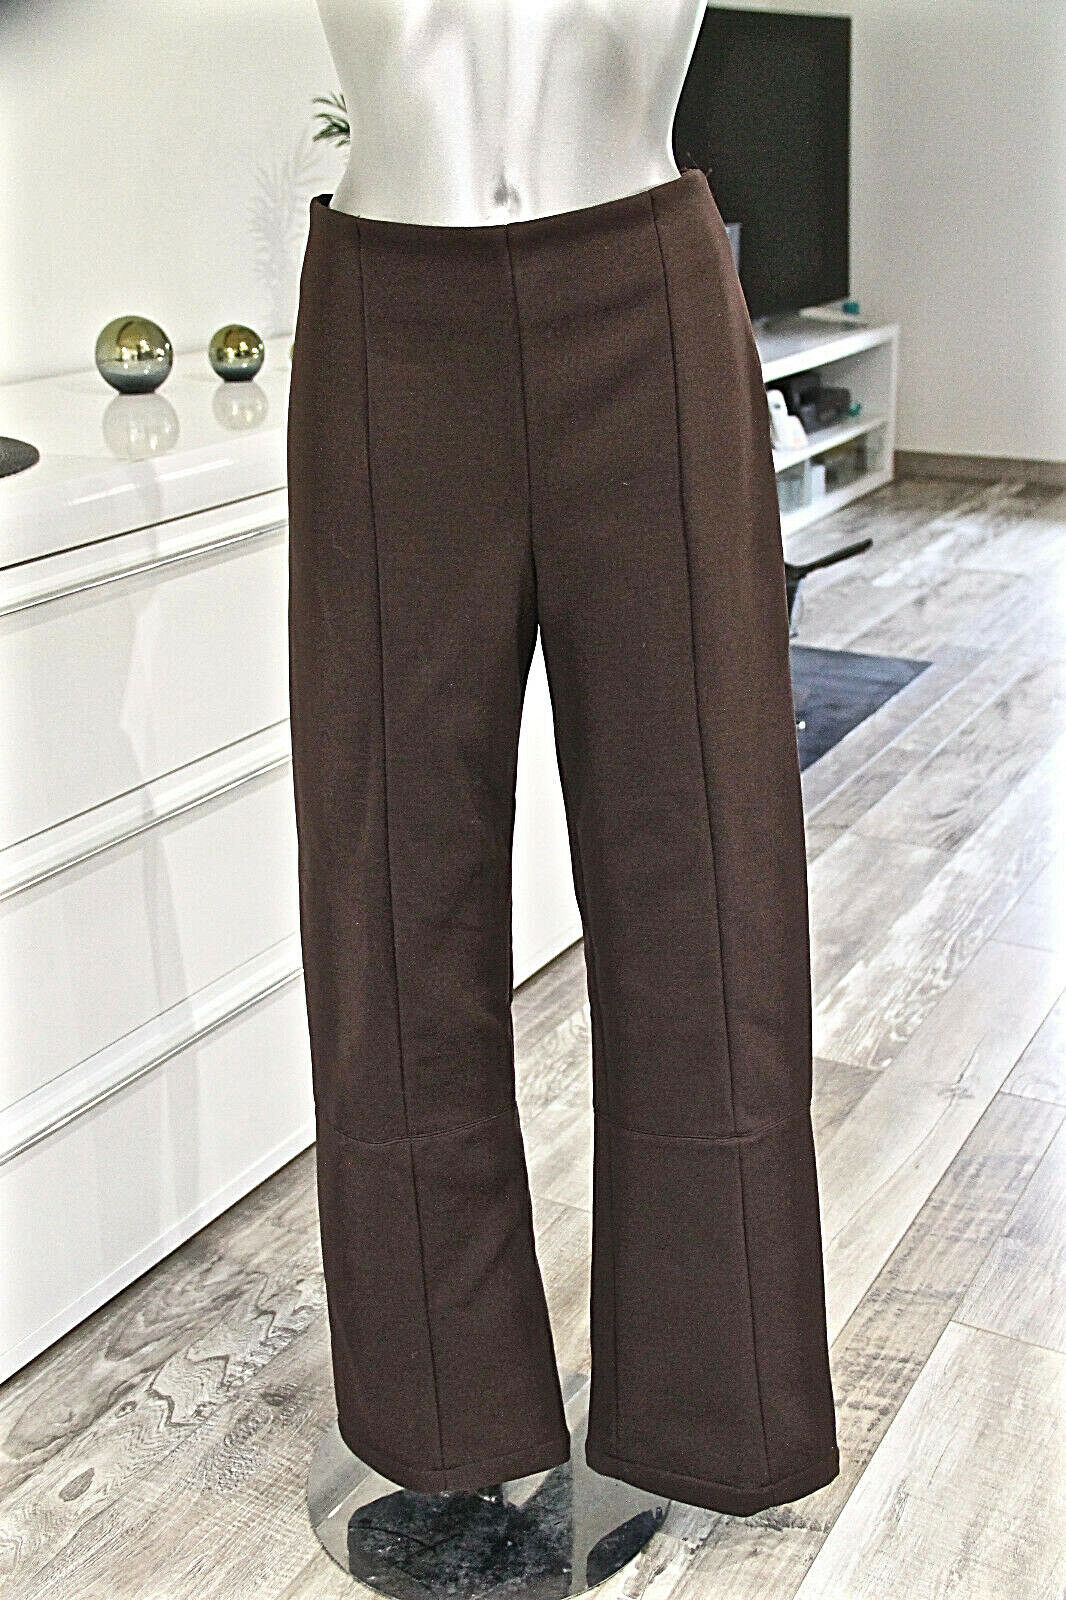 Spindle  ski pants snowboard brown woman COLMAR size 42 fr (46i) NEW  70% off cheap